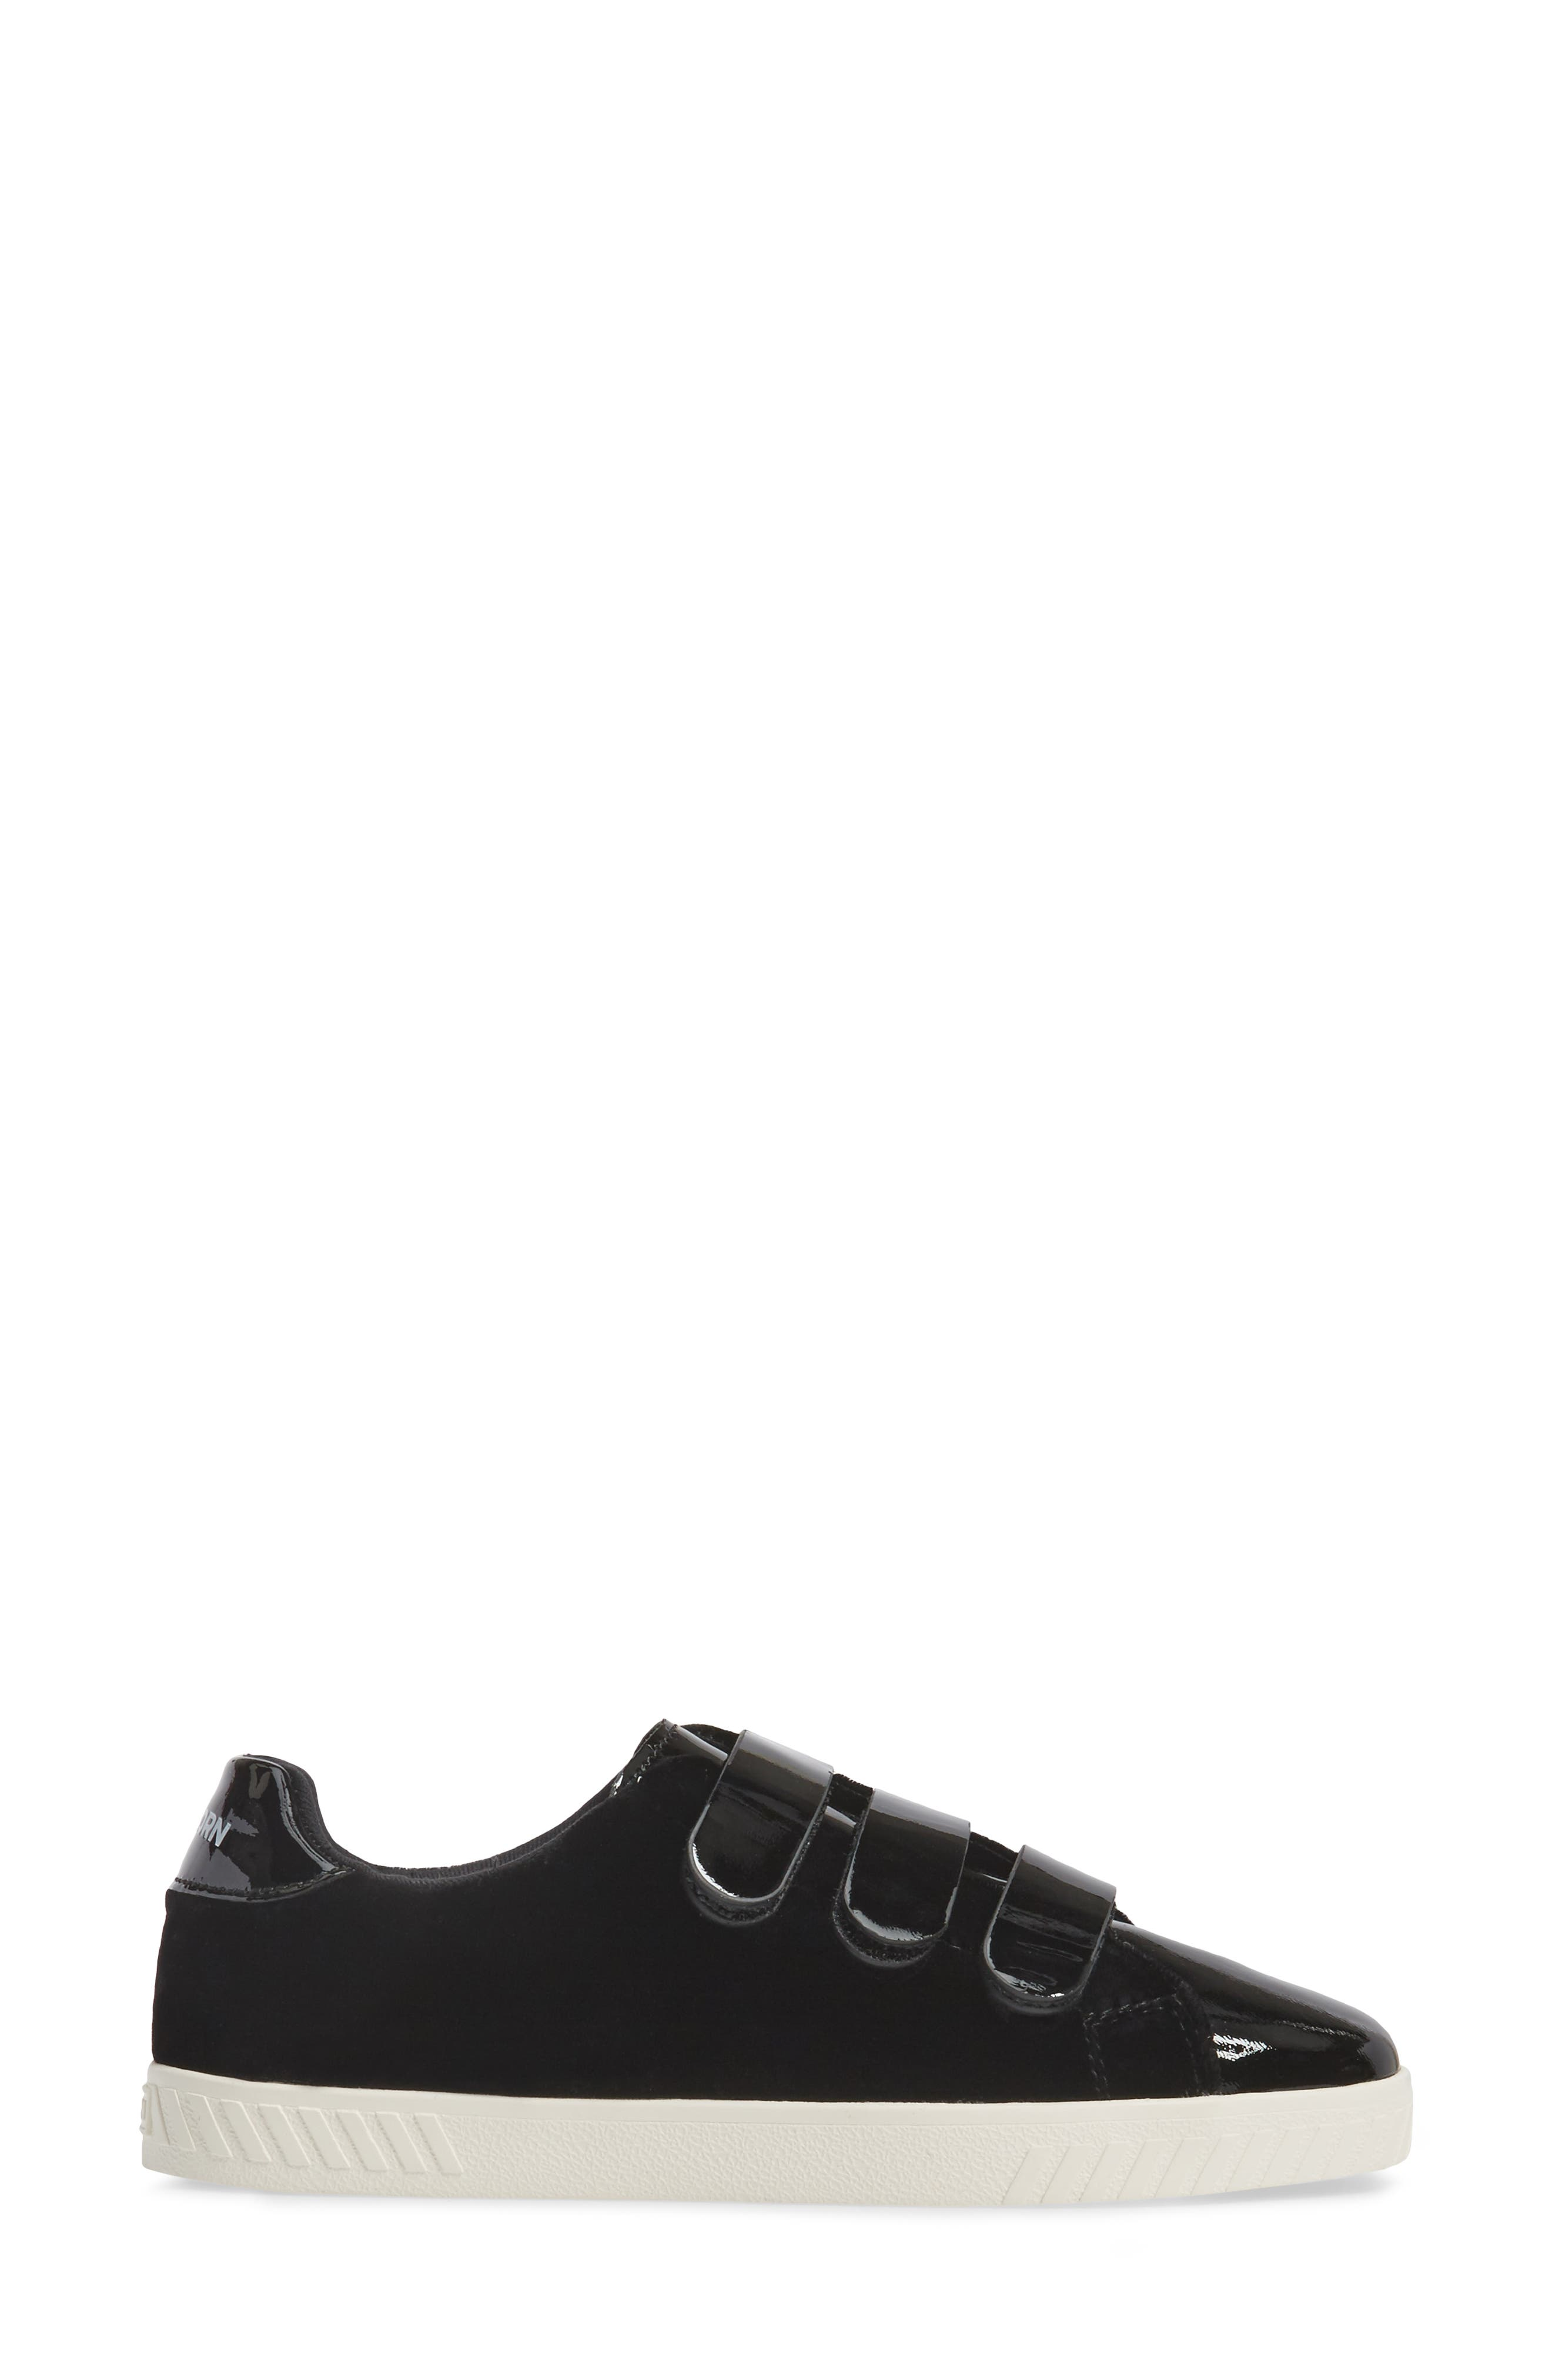 Carry Sneaker,                             Alternate thumbnail 3, color,                             Black/ Nero